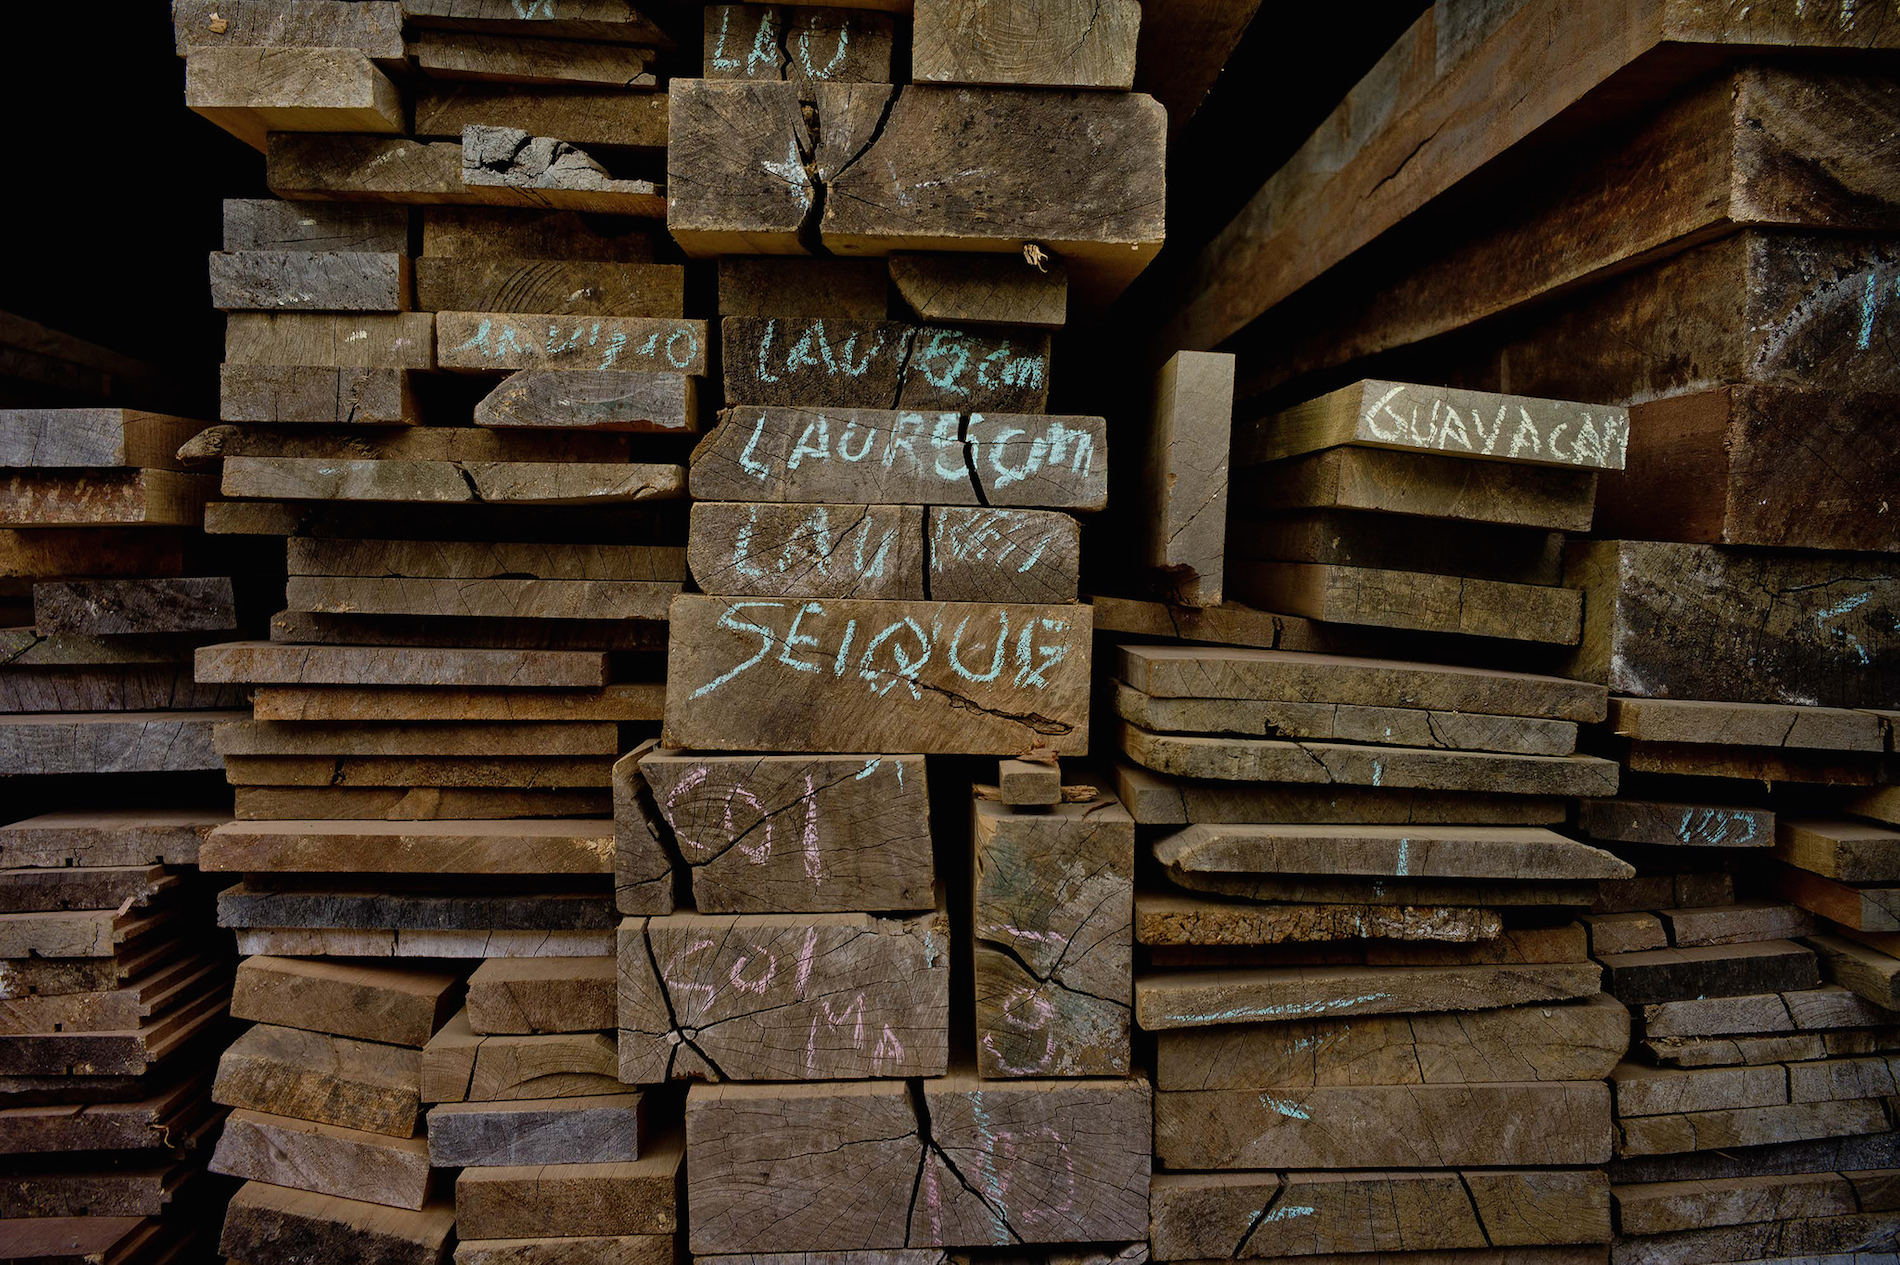 Alternative approaches to illegal logging